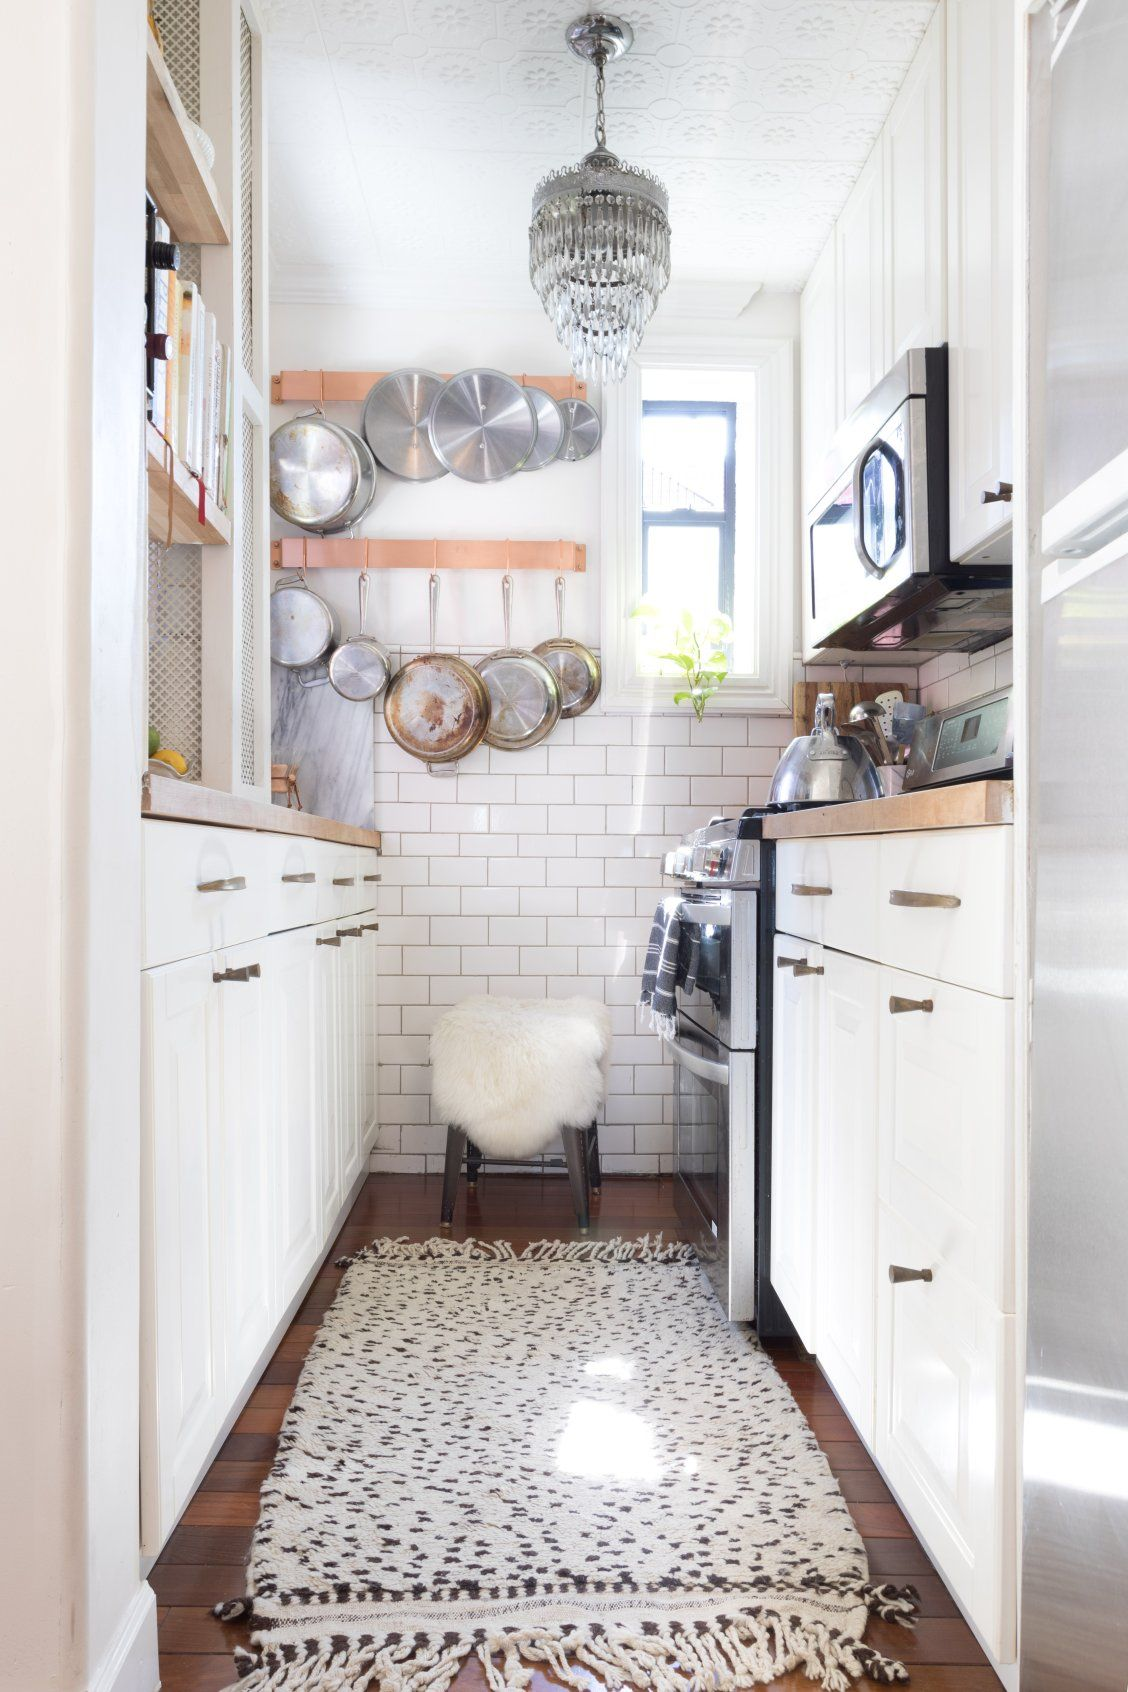 This kitchen remodel feels much bigger than square feet